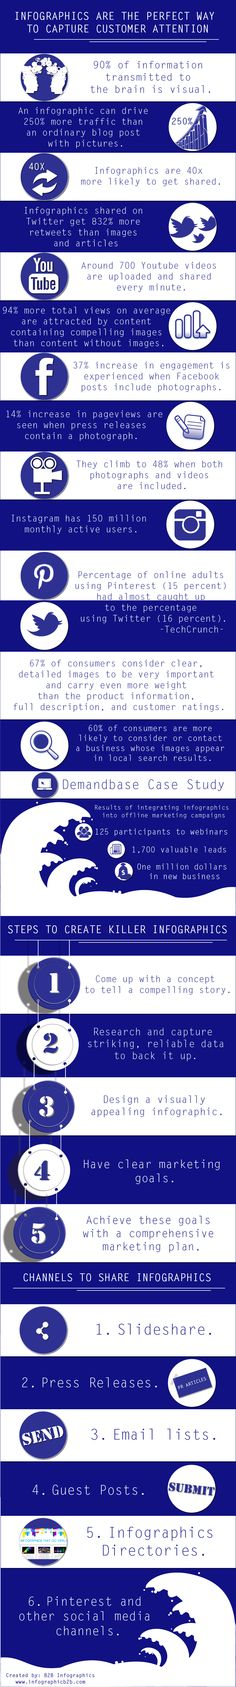 Infographics Are the Perfect Way to Capture Customer Attention image Infographics Are the Perfect Way to Capture Customer Attention Infograp...